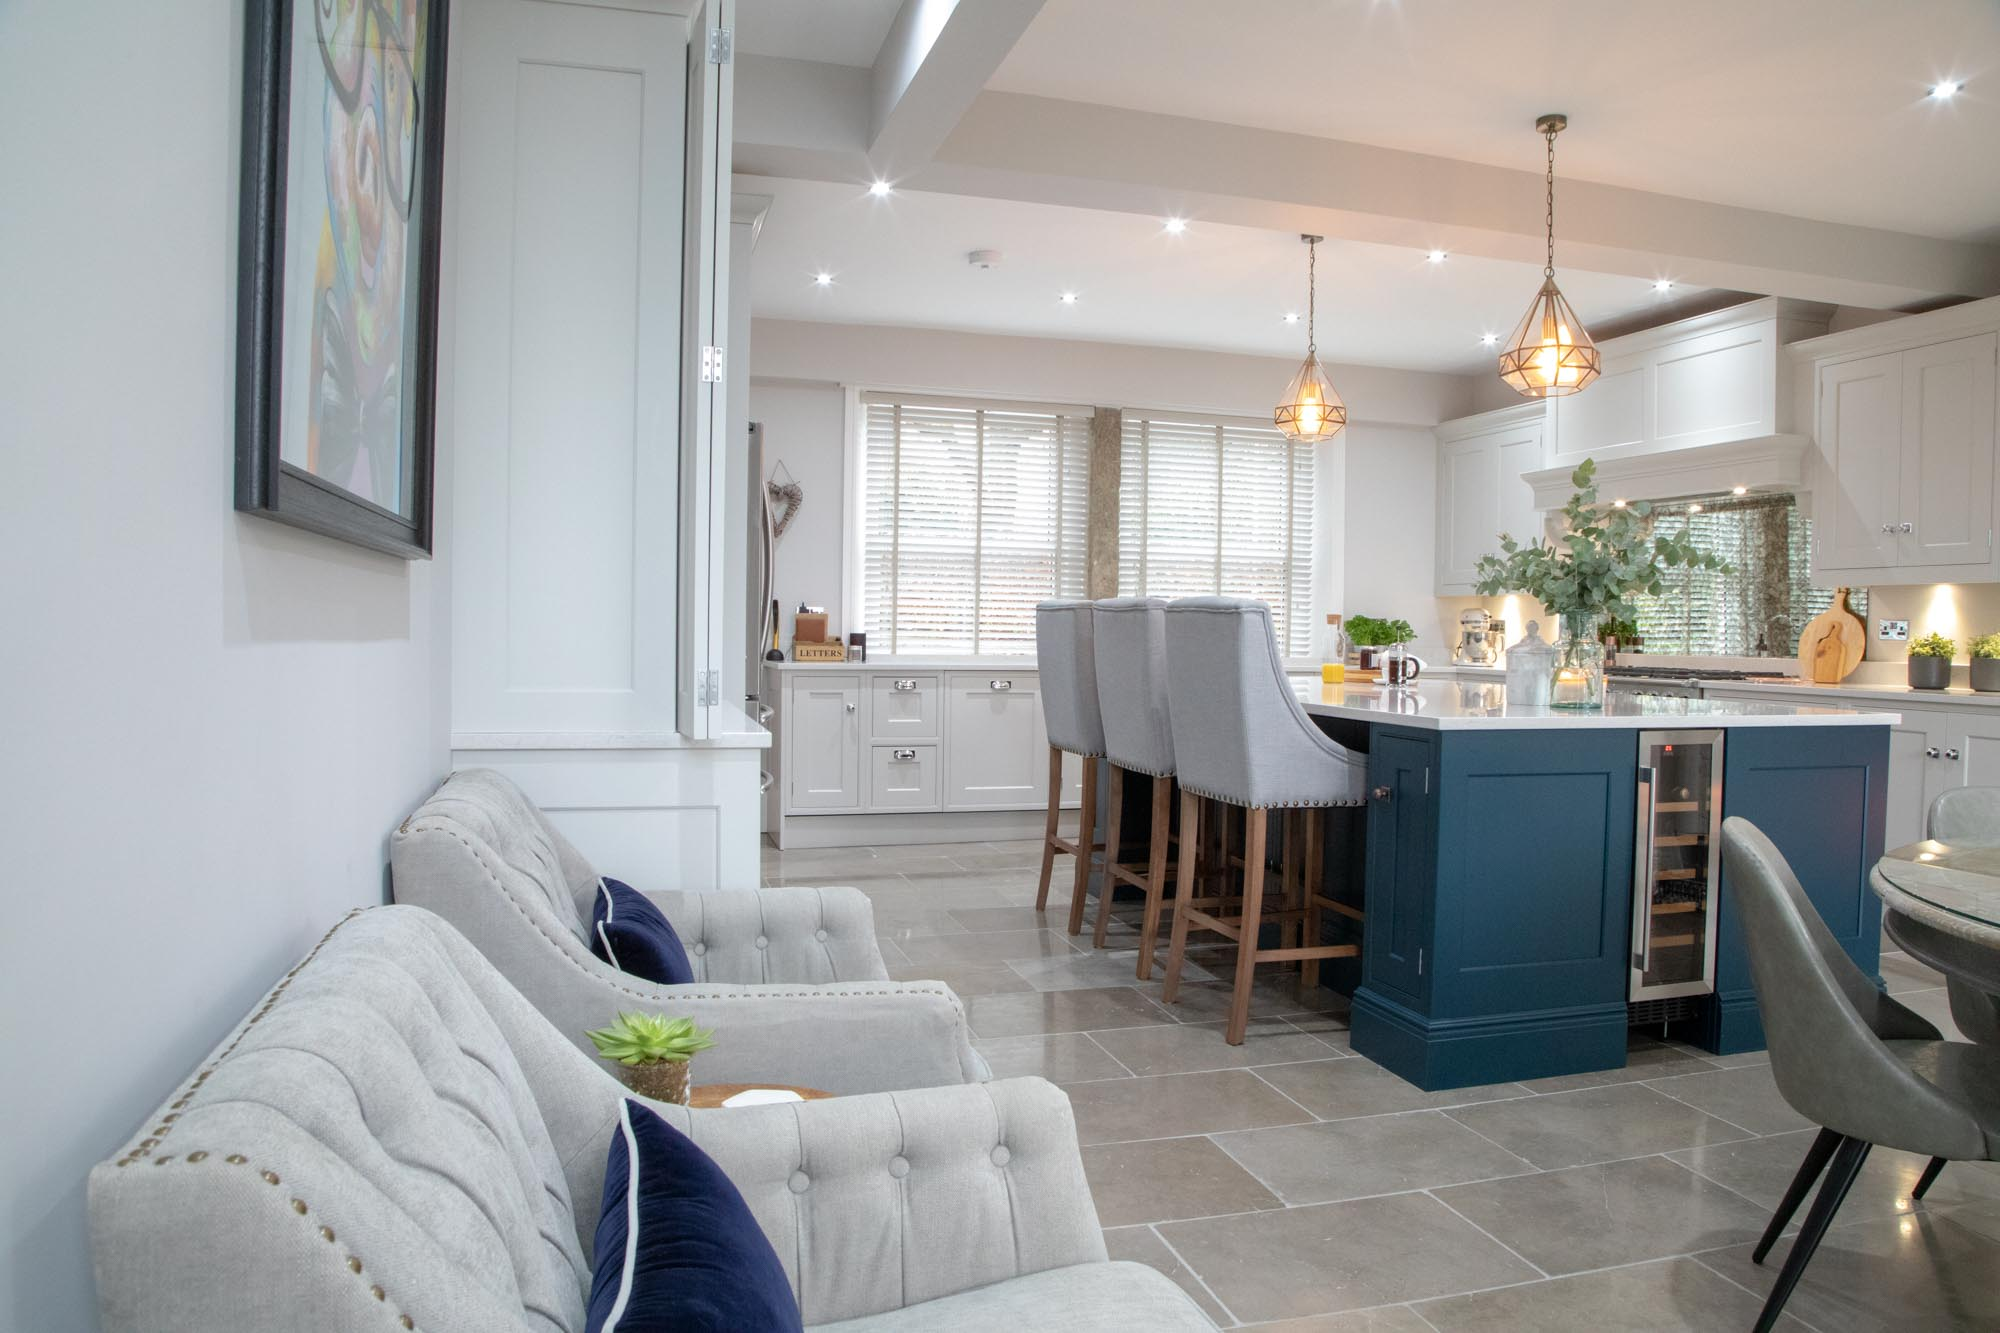 Kitchen Remodeling Design Ideas Inspiration: What To Expect From Kitchen Designs In 2019